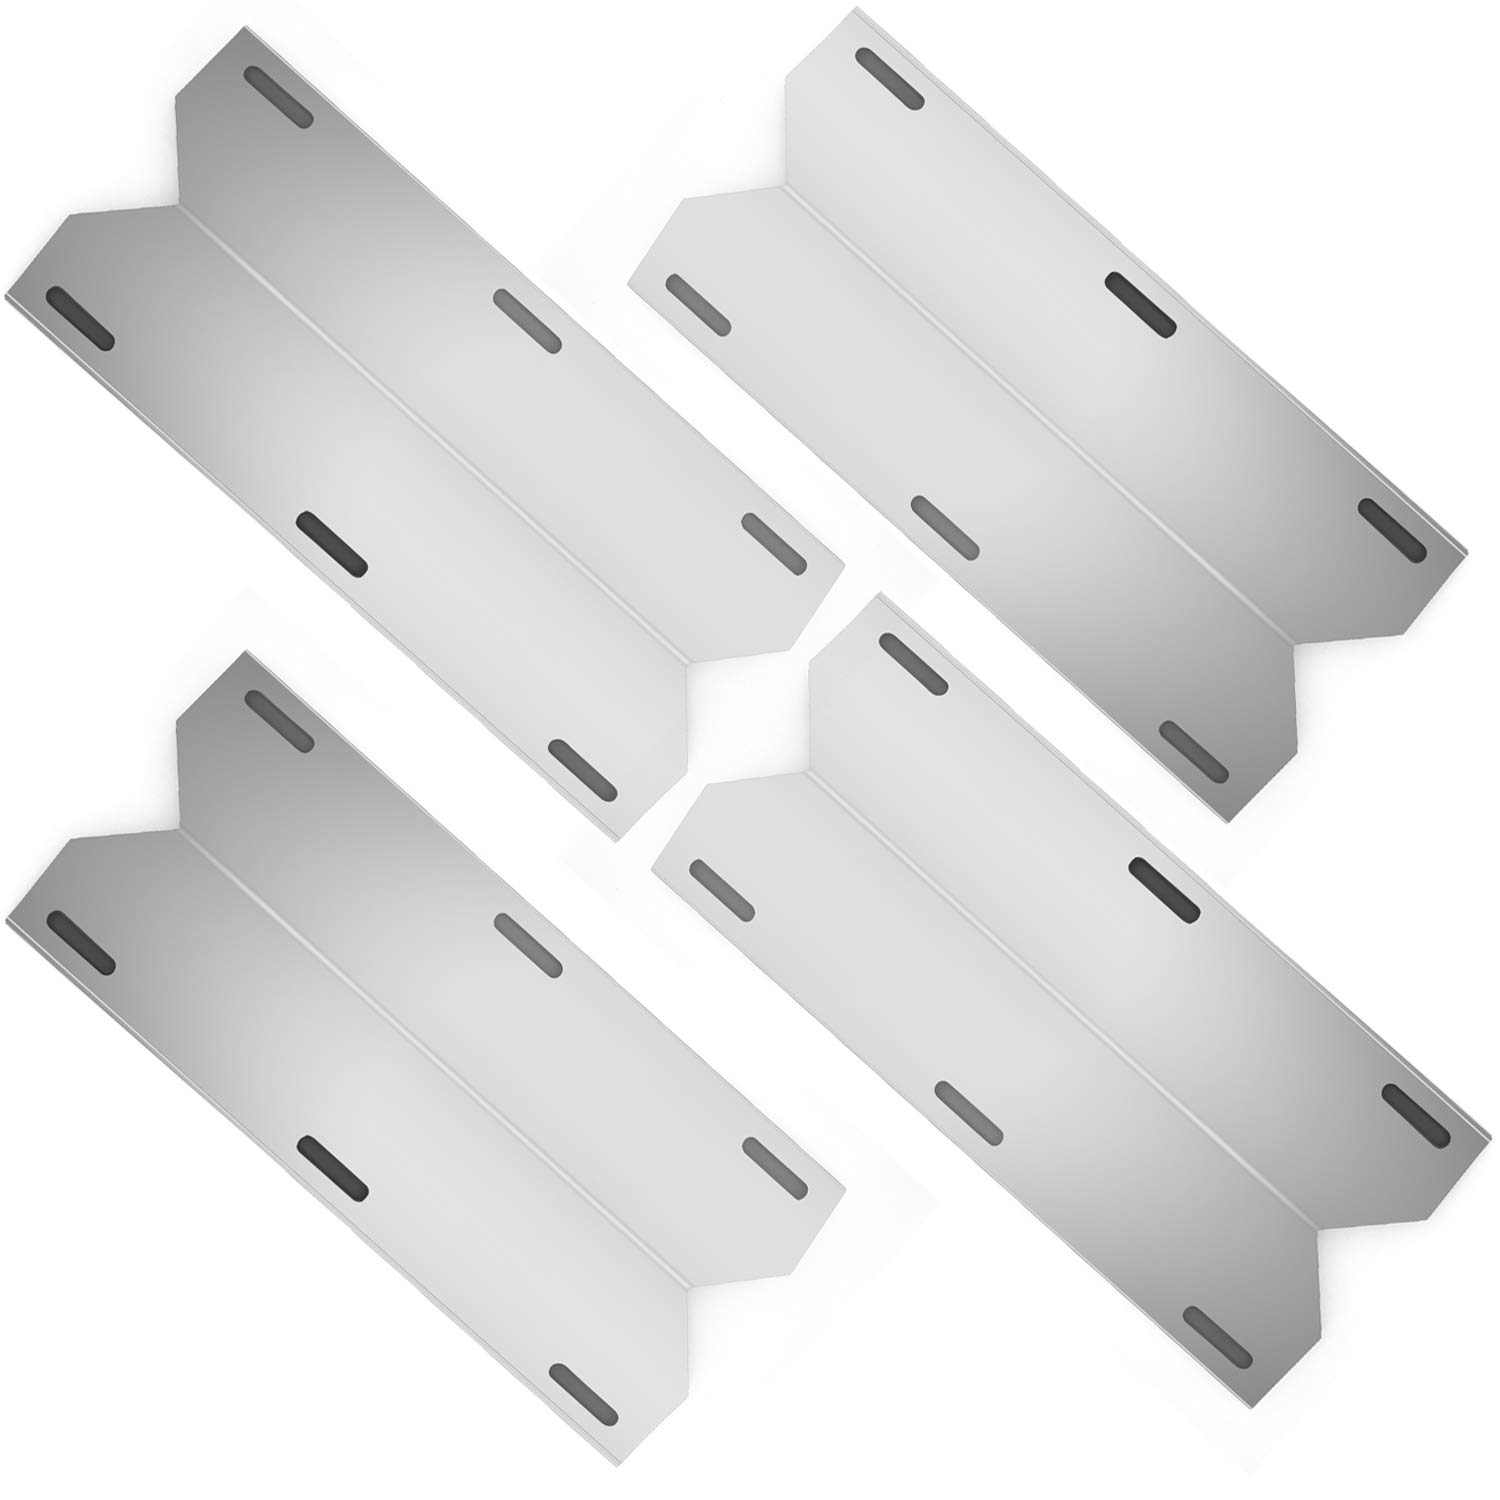 Hongso SPA231 (4-Pack) Stainless Steel BBQ Gas Grill Heat Plate, Heat Shield, Heat Tent, Burner Cover, Vaporizor Bar, and Flavorizer Bar for Costco Kirland, Jenn-air, Nexgrill, Lowes (17 3/4 by Hongso